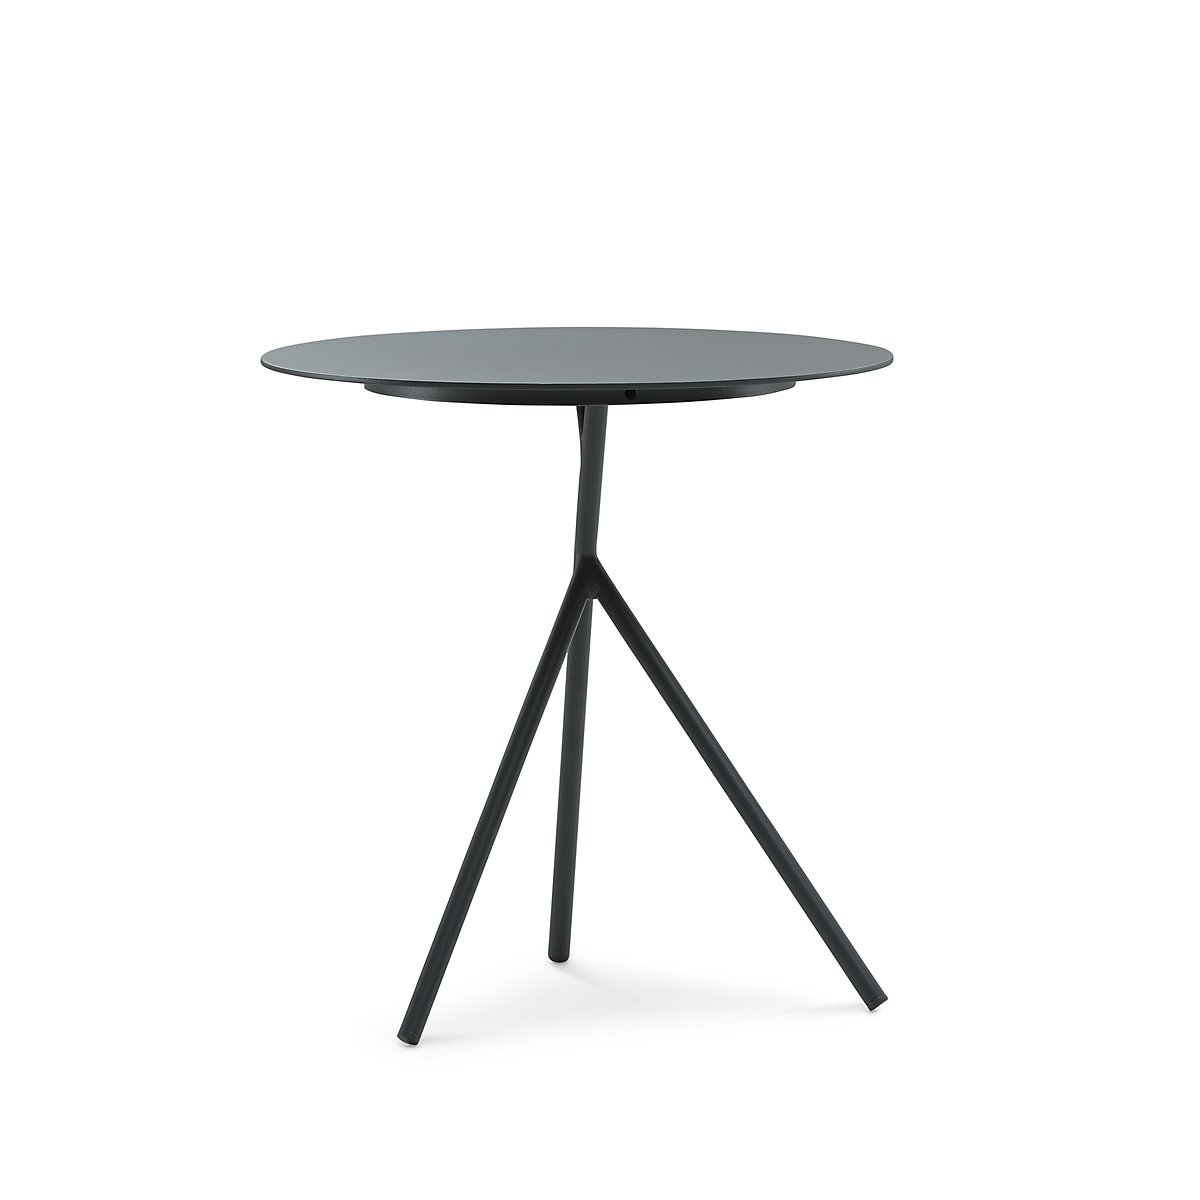 ibiza dark gray low accent table condo furniture toronto legend homes metal bedside teton village black outdoor umbrella ceramic nesting tables target brown entry two tier round